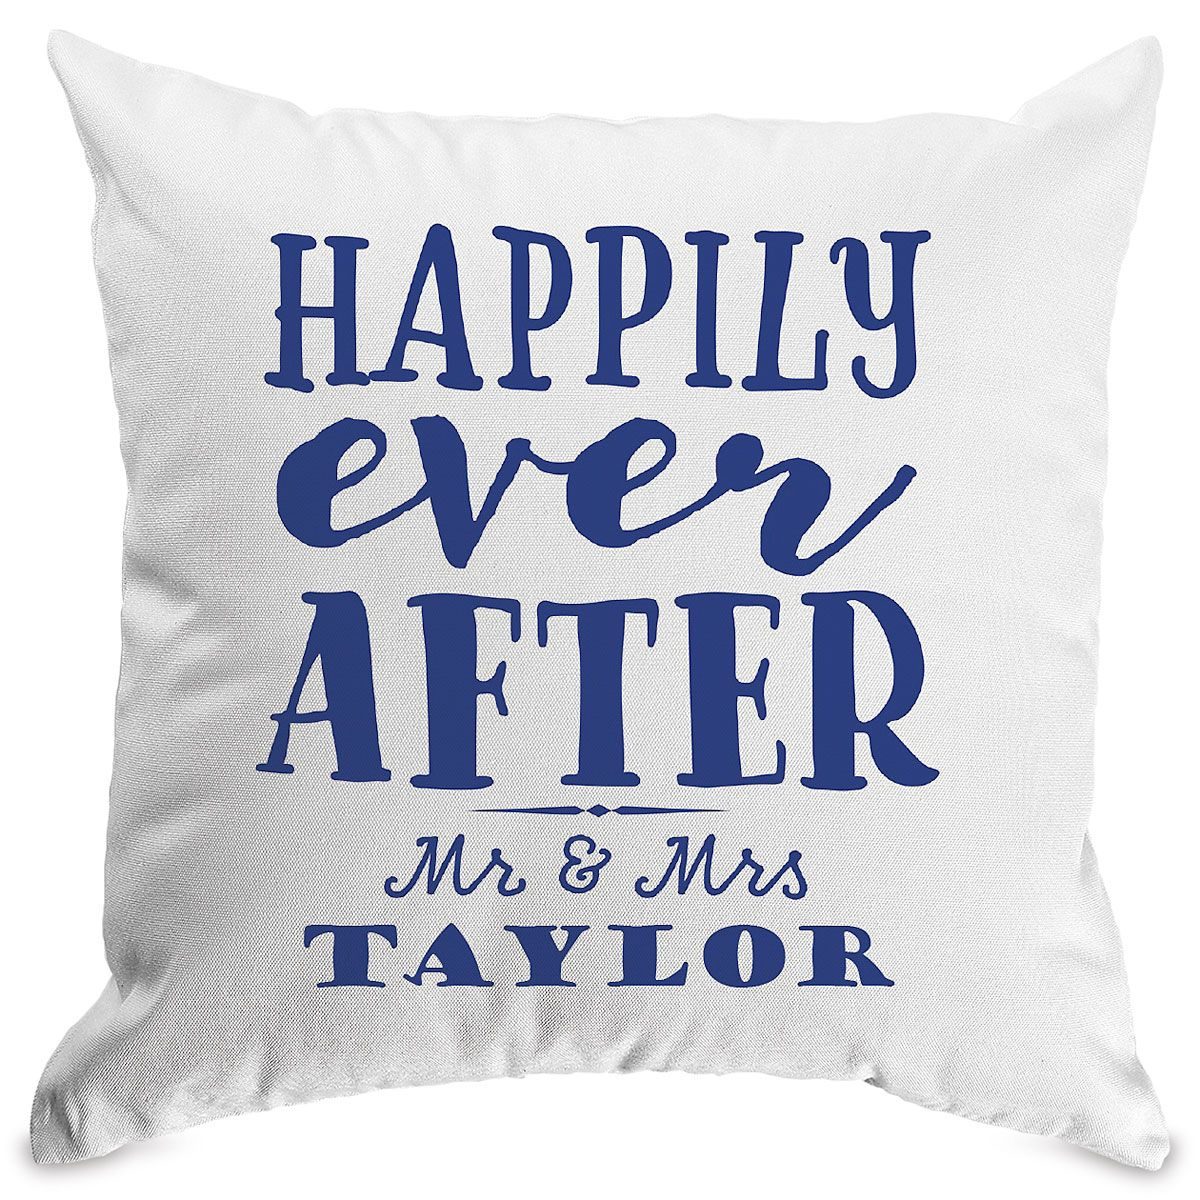 Happily Ever After Customized White Pillow